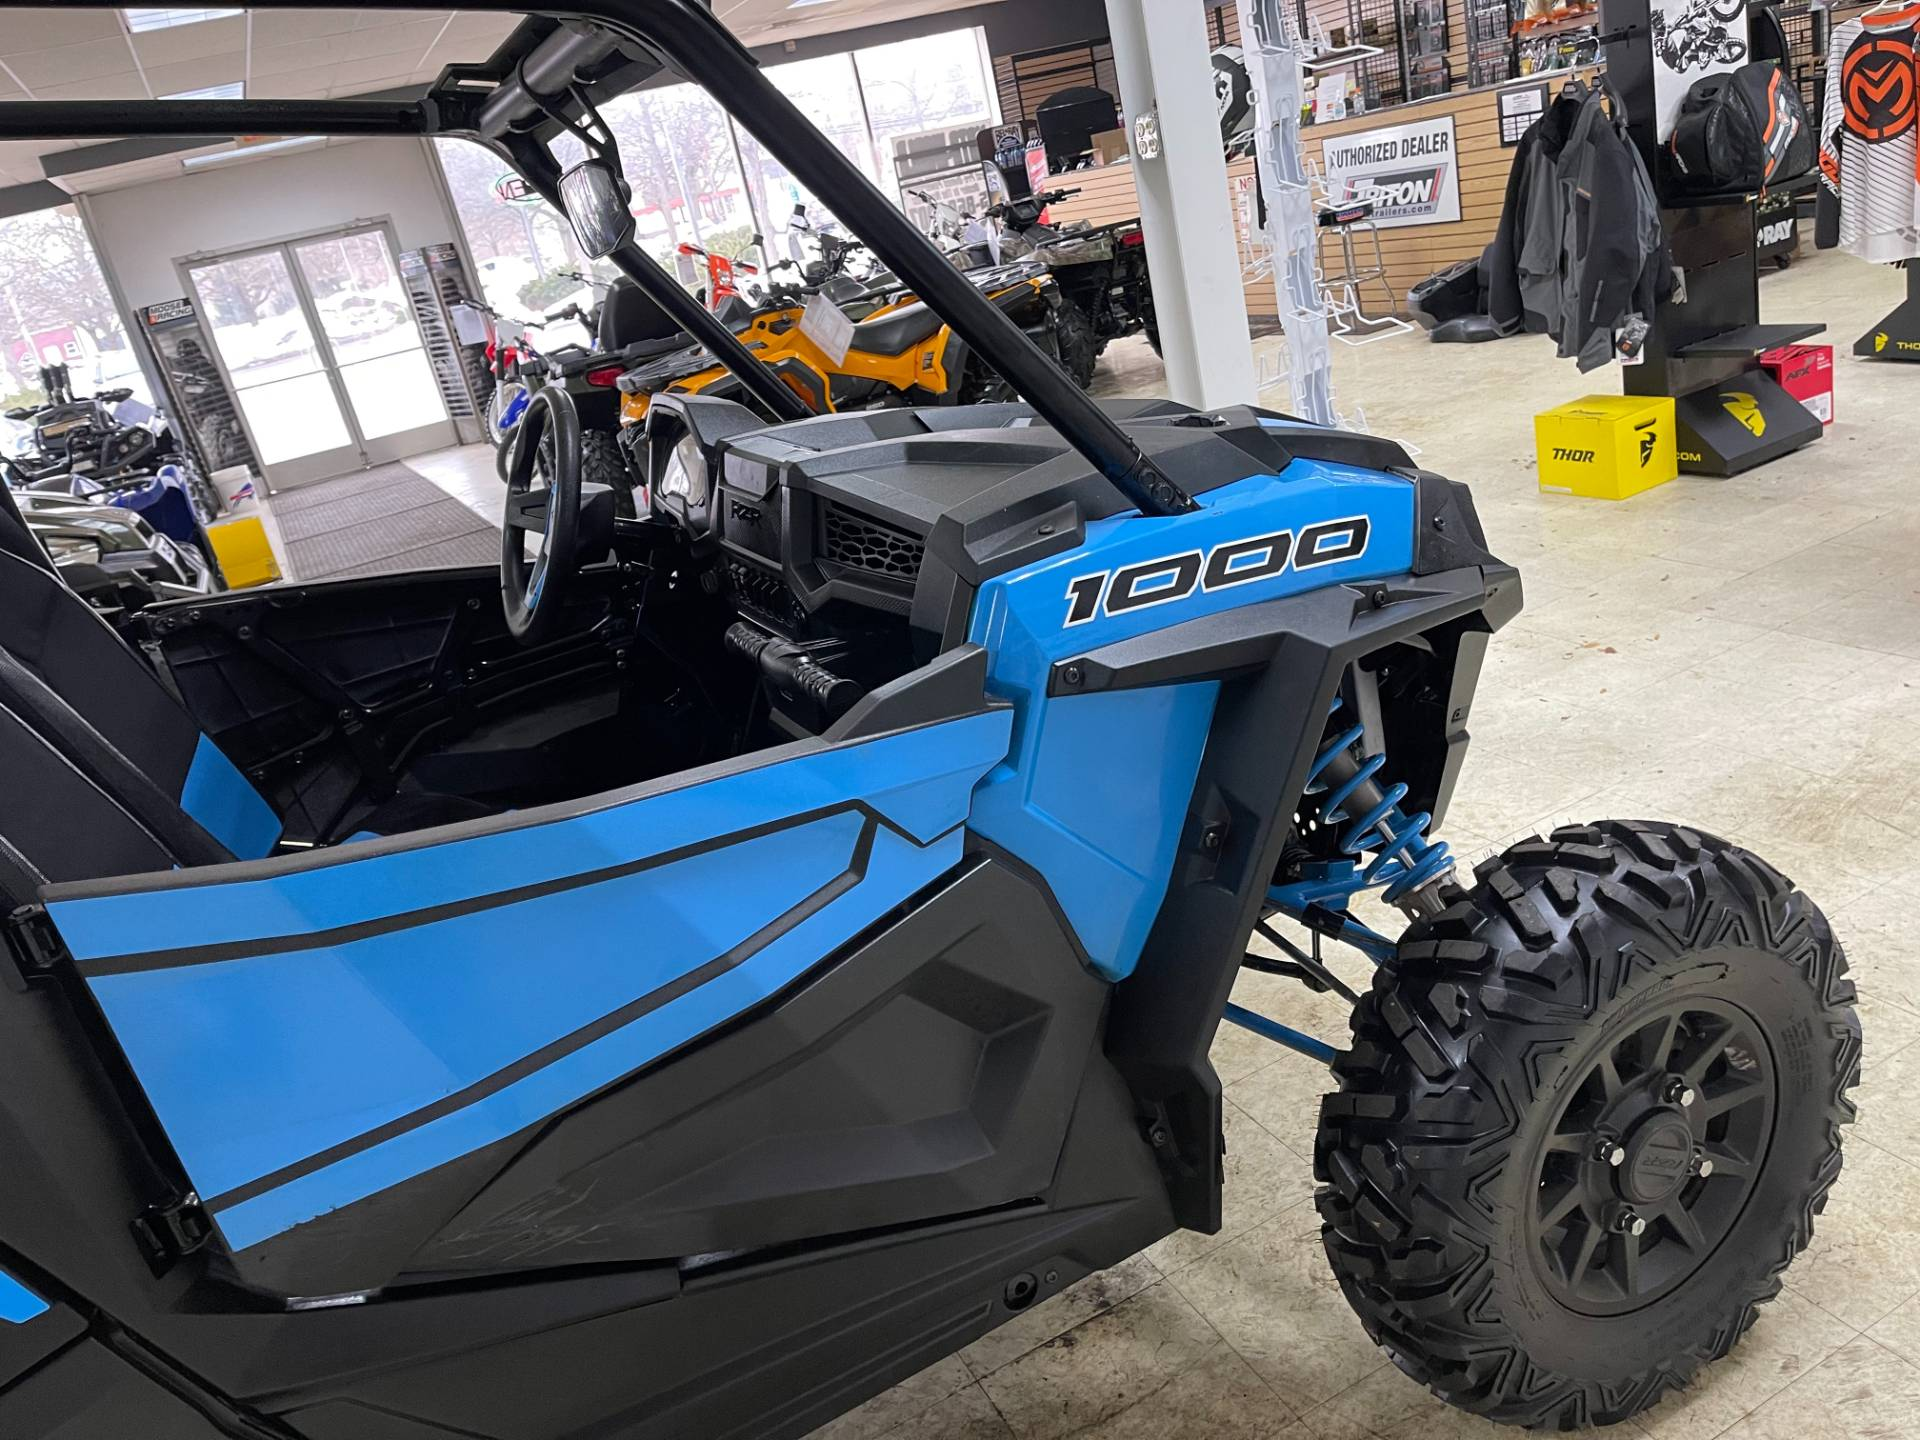 2020 Polaris RZR XP 4 1000 in Herkimer, New York - Photo 21